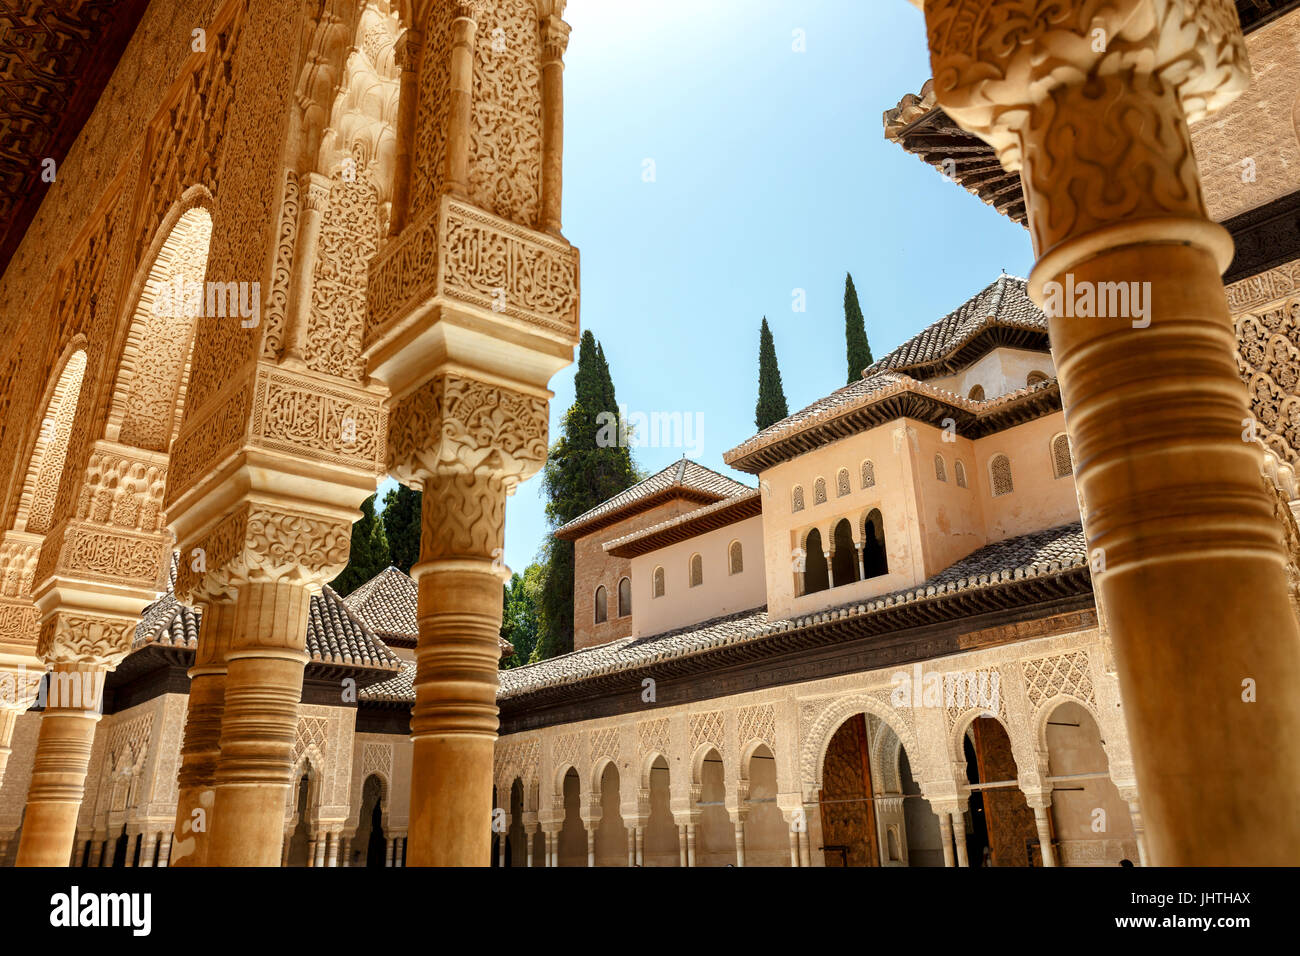 Andalusian Architecture Stock Photos Amp Andalusian